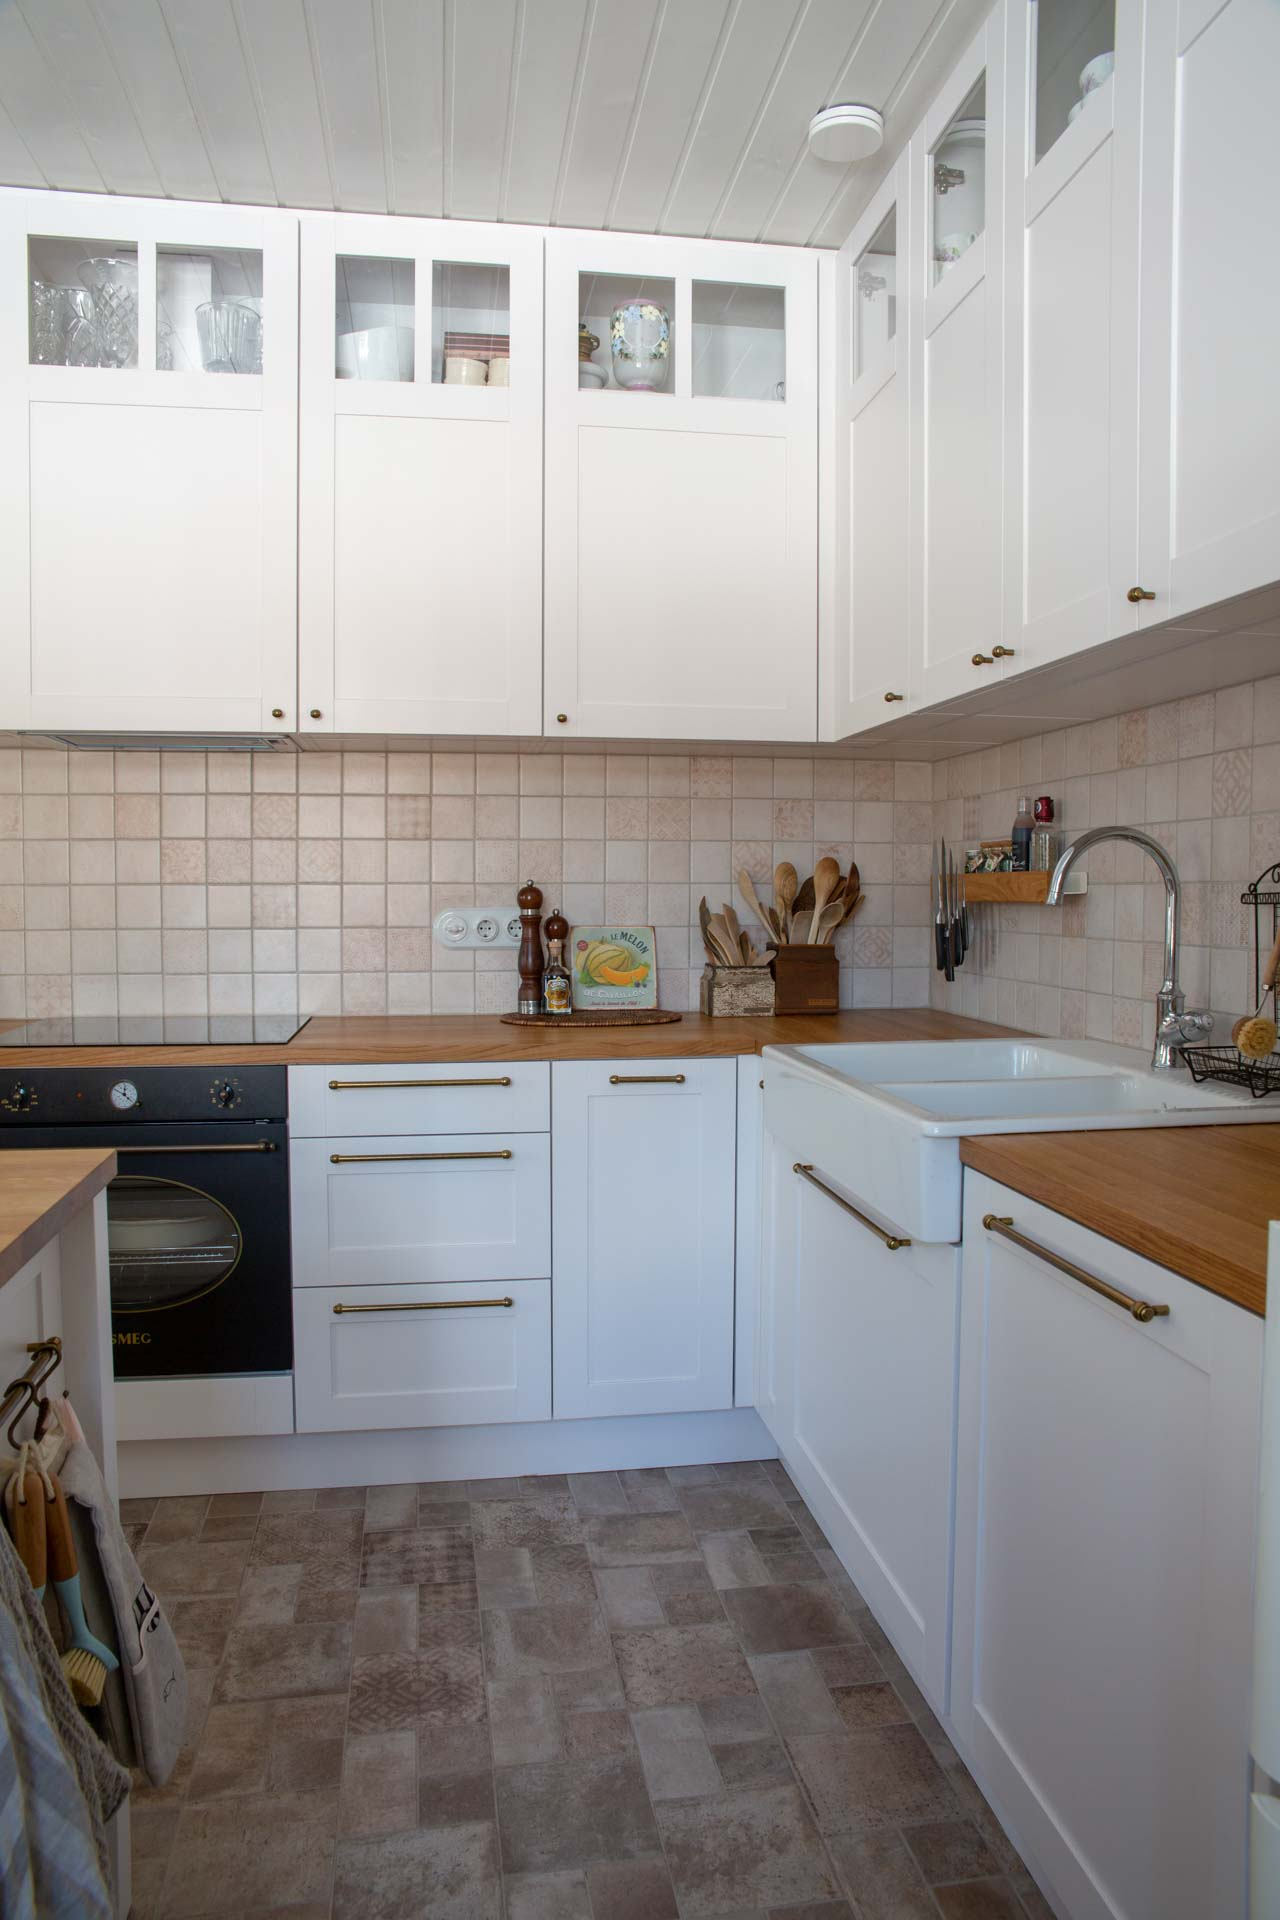 Kitchen furniture at a low price